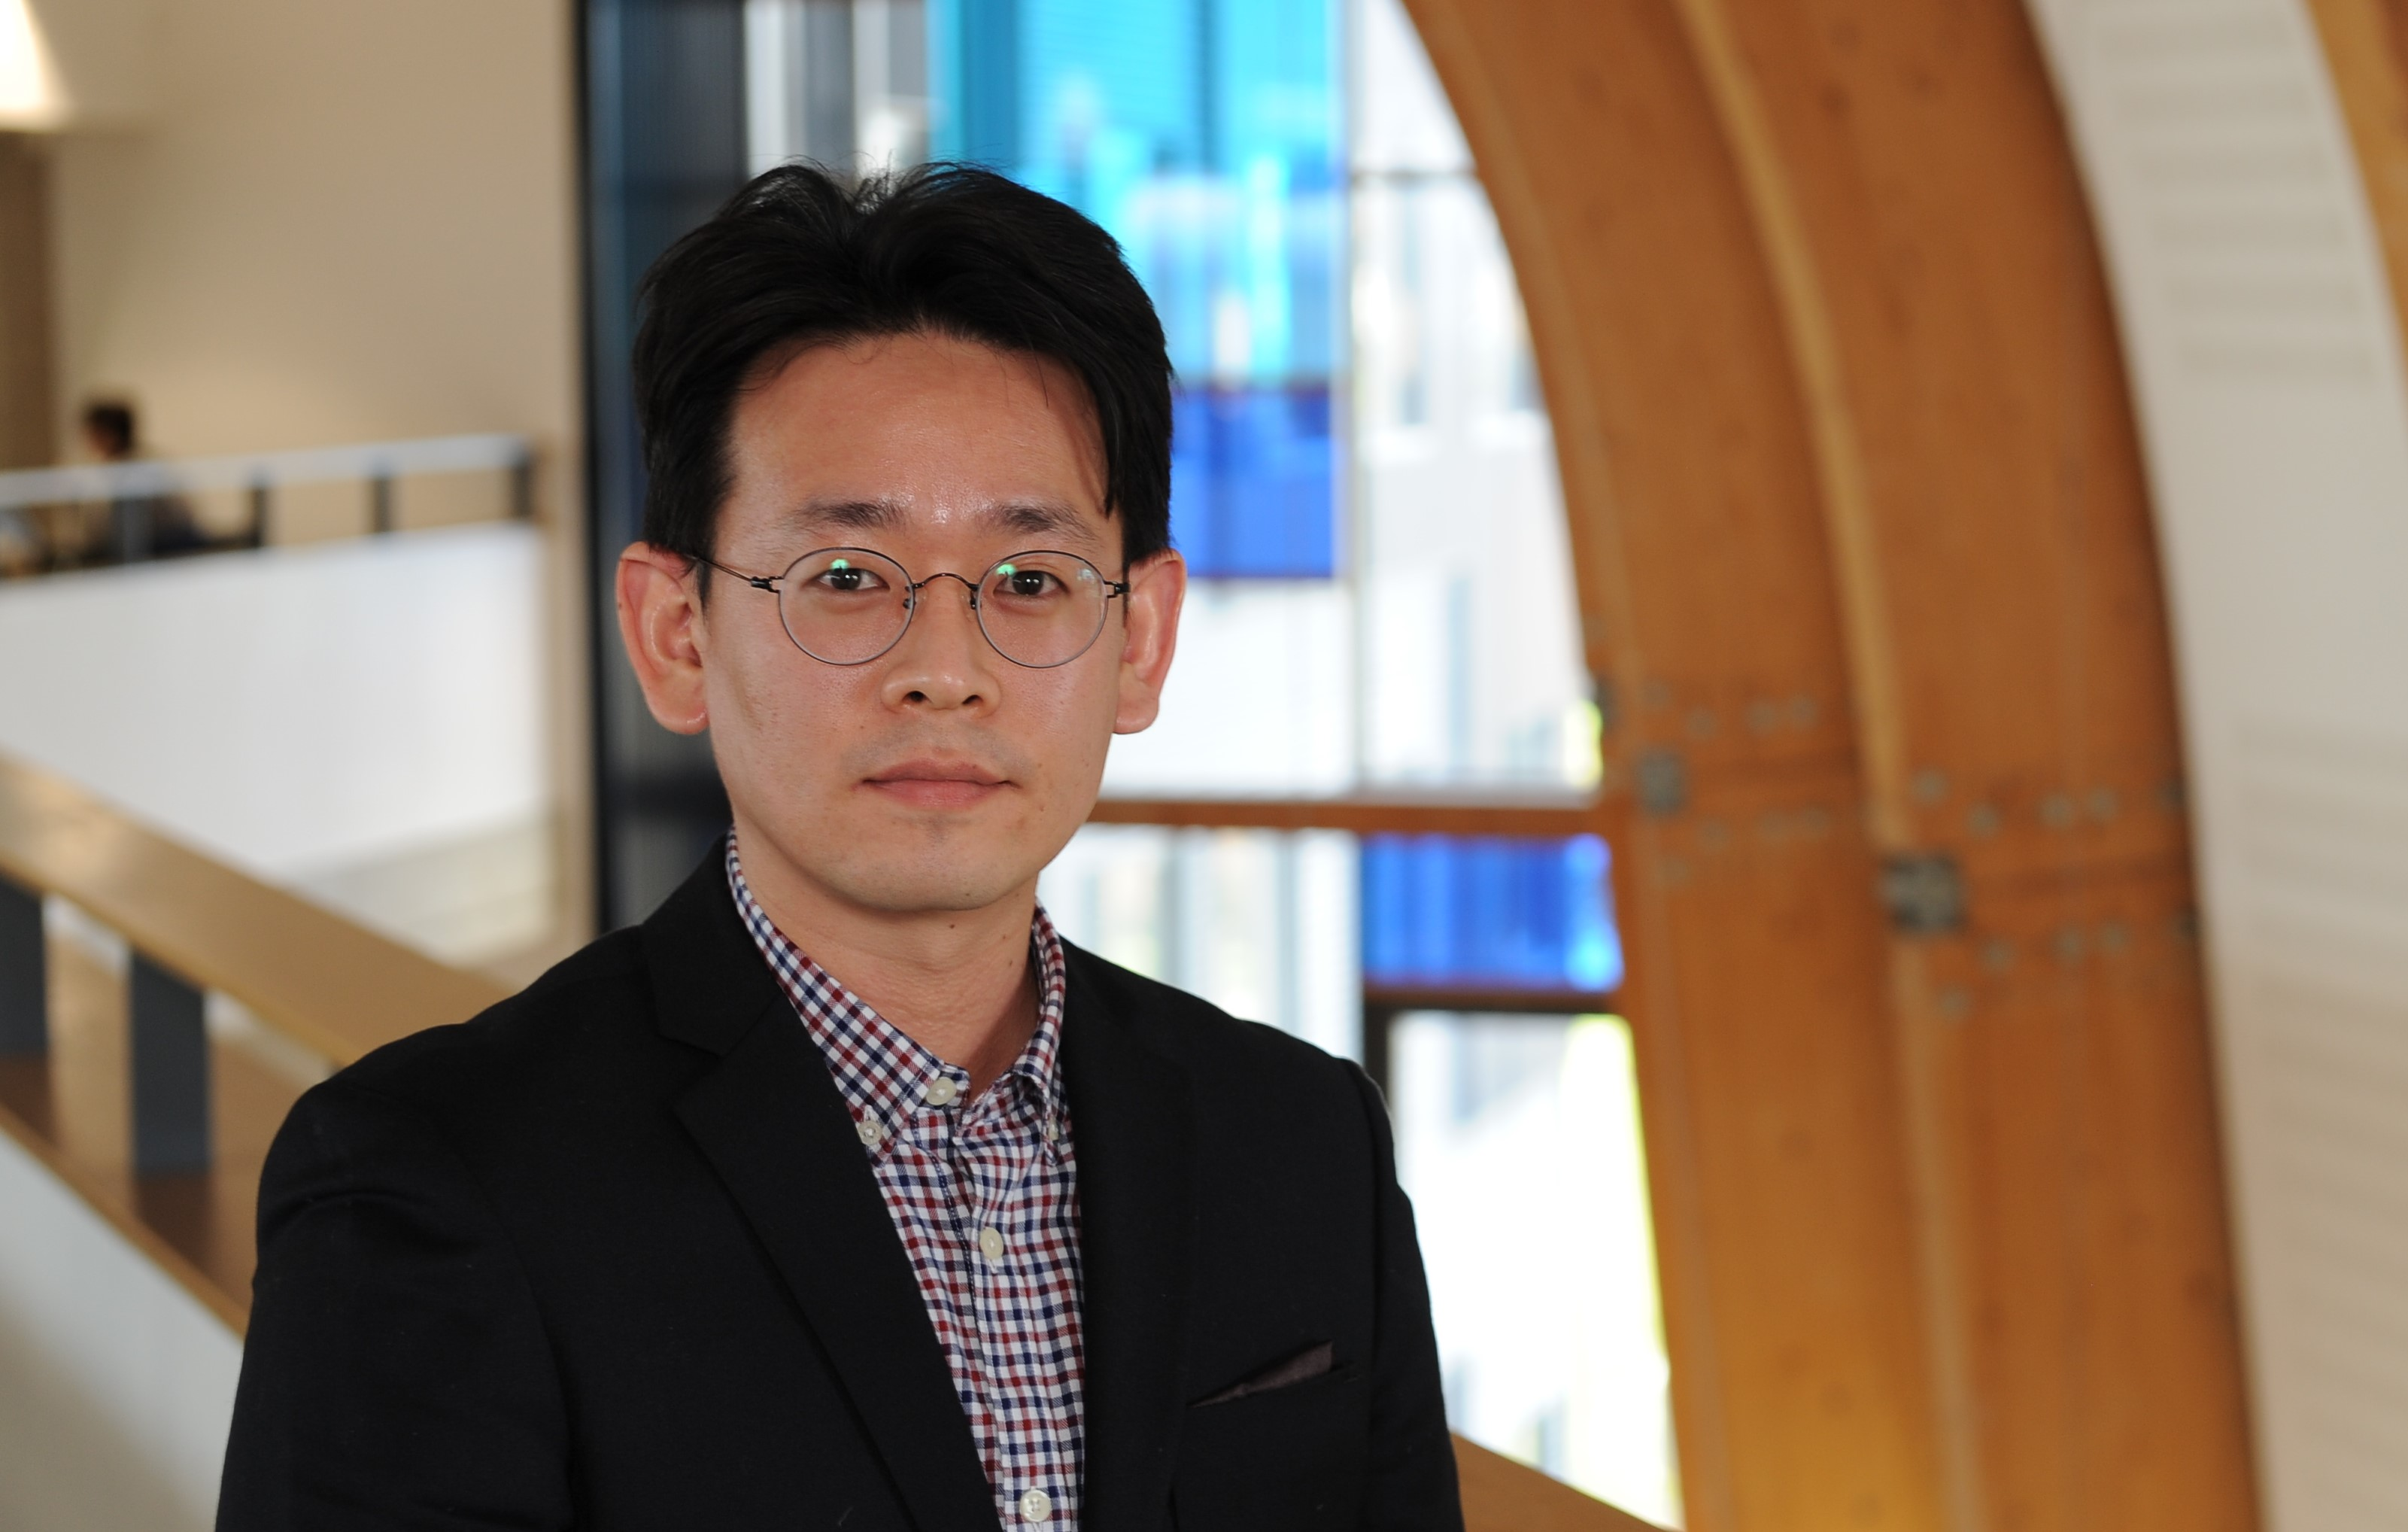 Dr Jongmin Lee shortlisted for the Peter J. Buckley and Mark Casson dissertation award